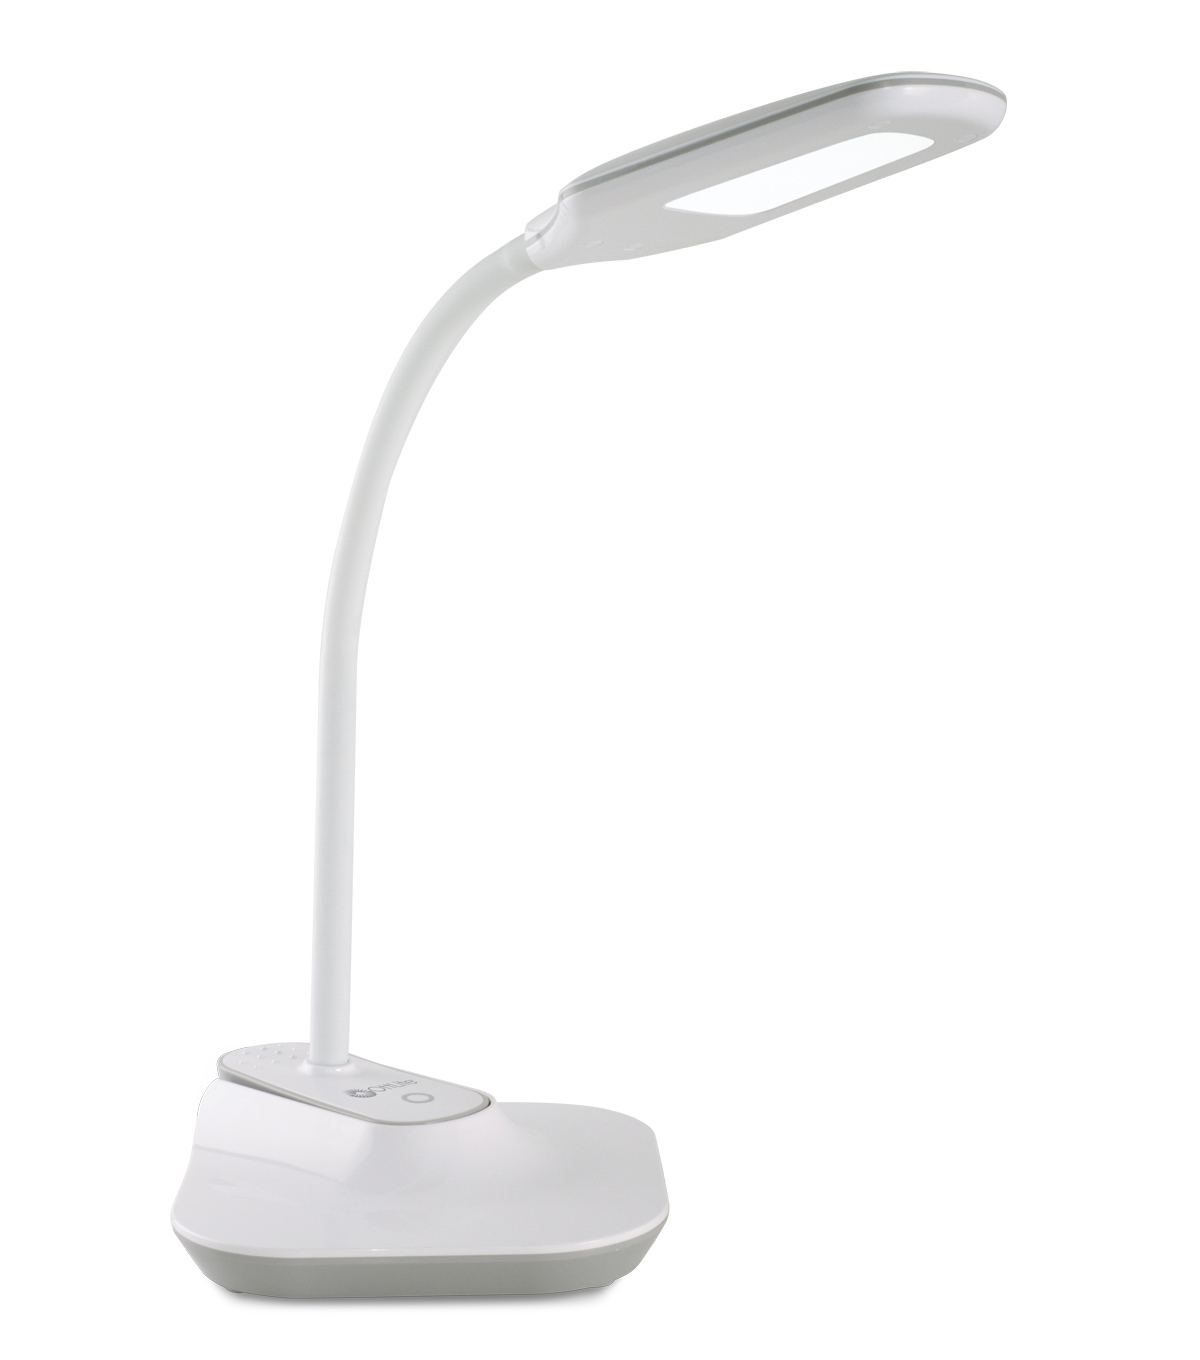 Desk Lamp Ottlite Led Flexible Clip Desk Lamp White